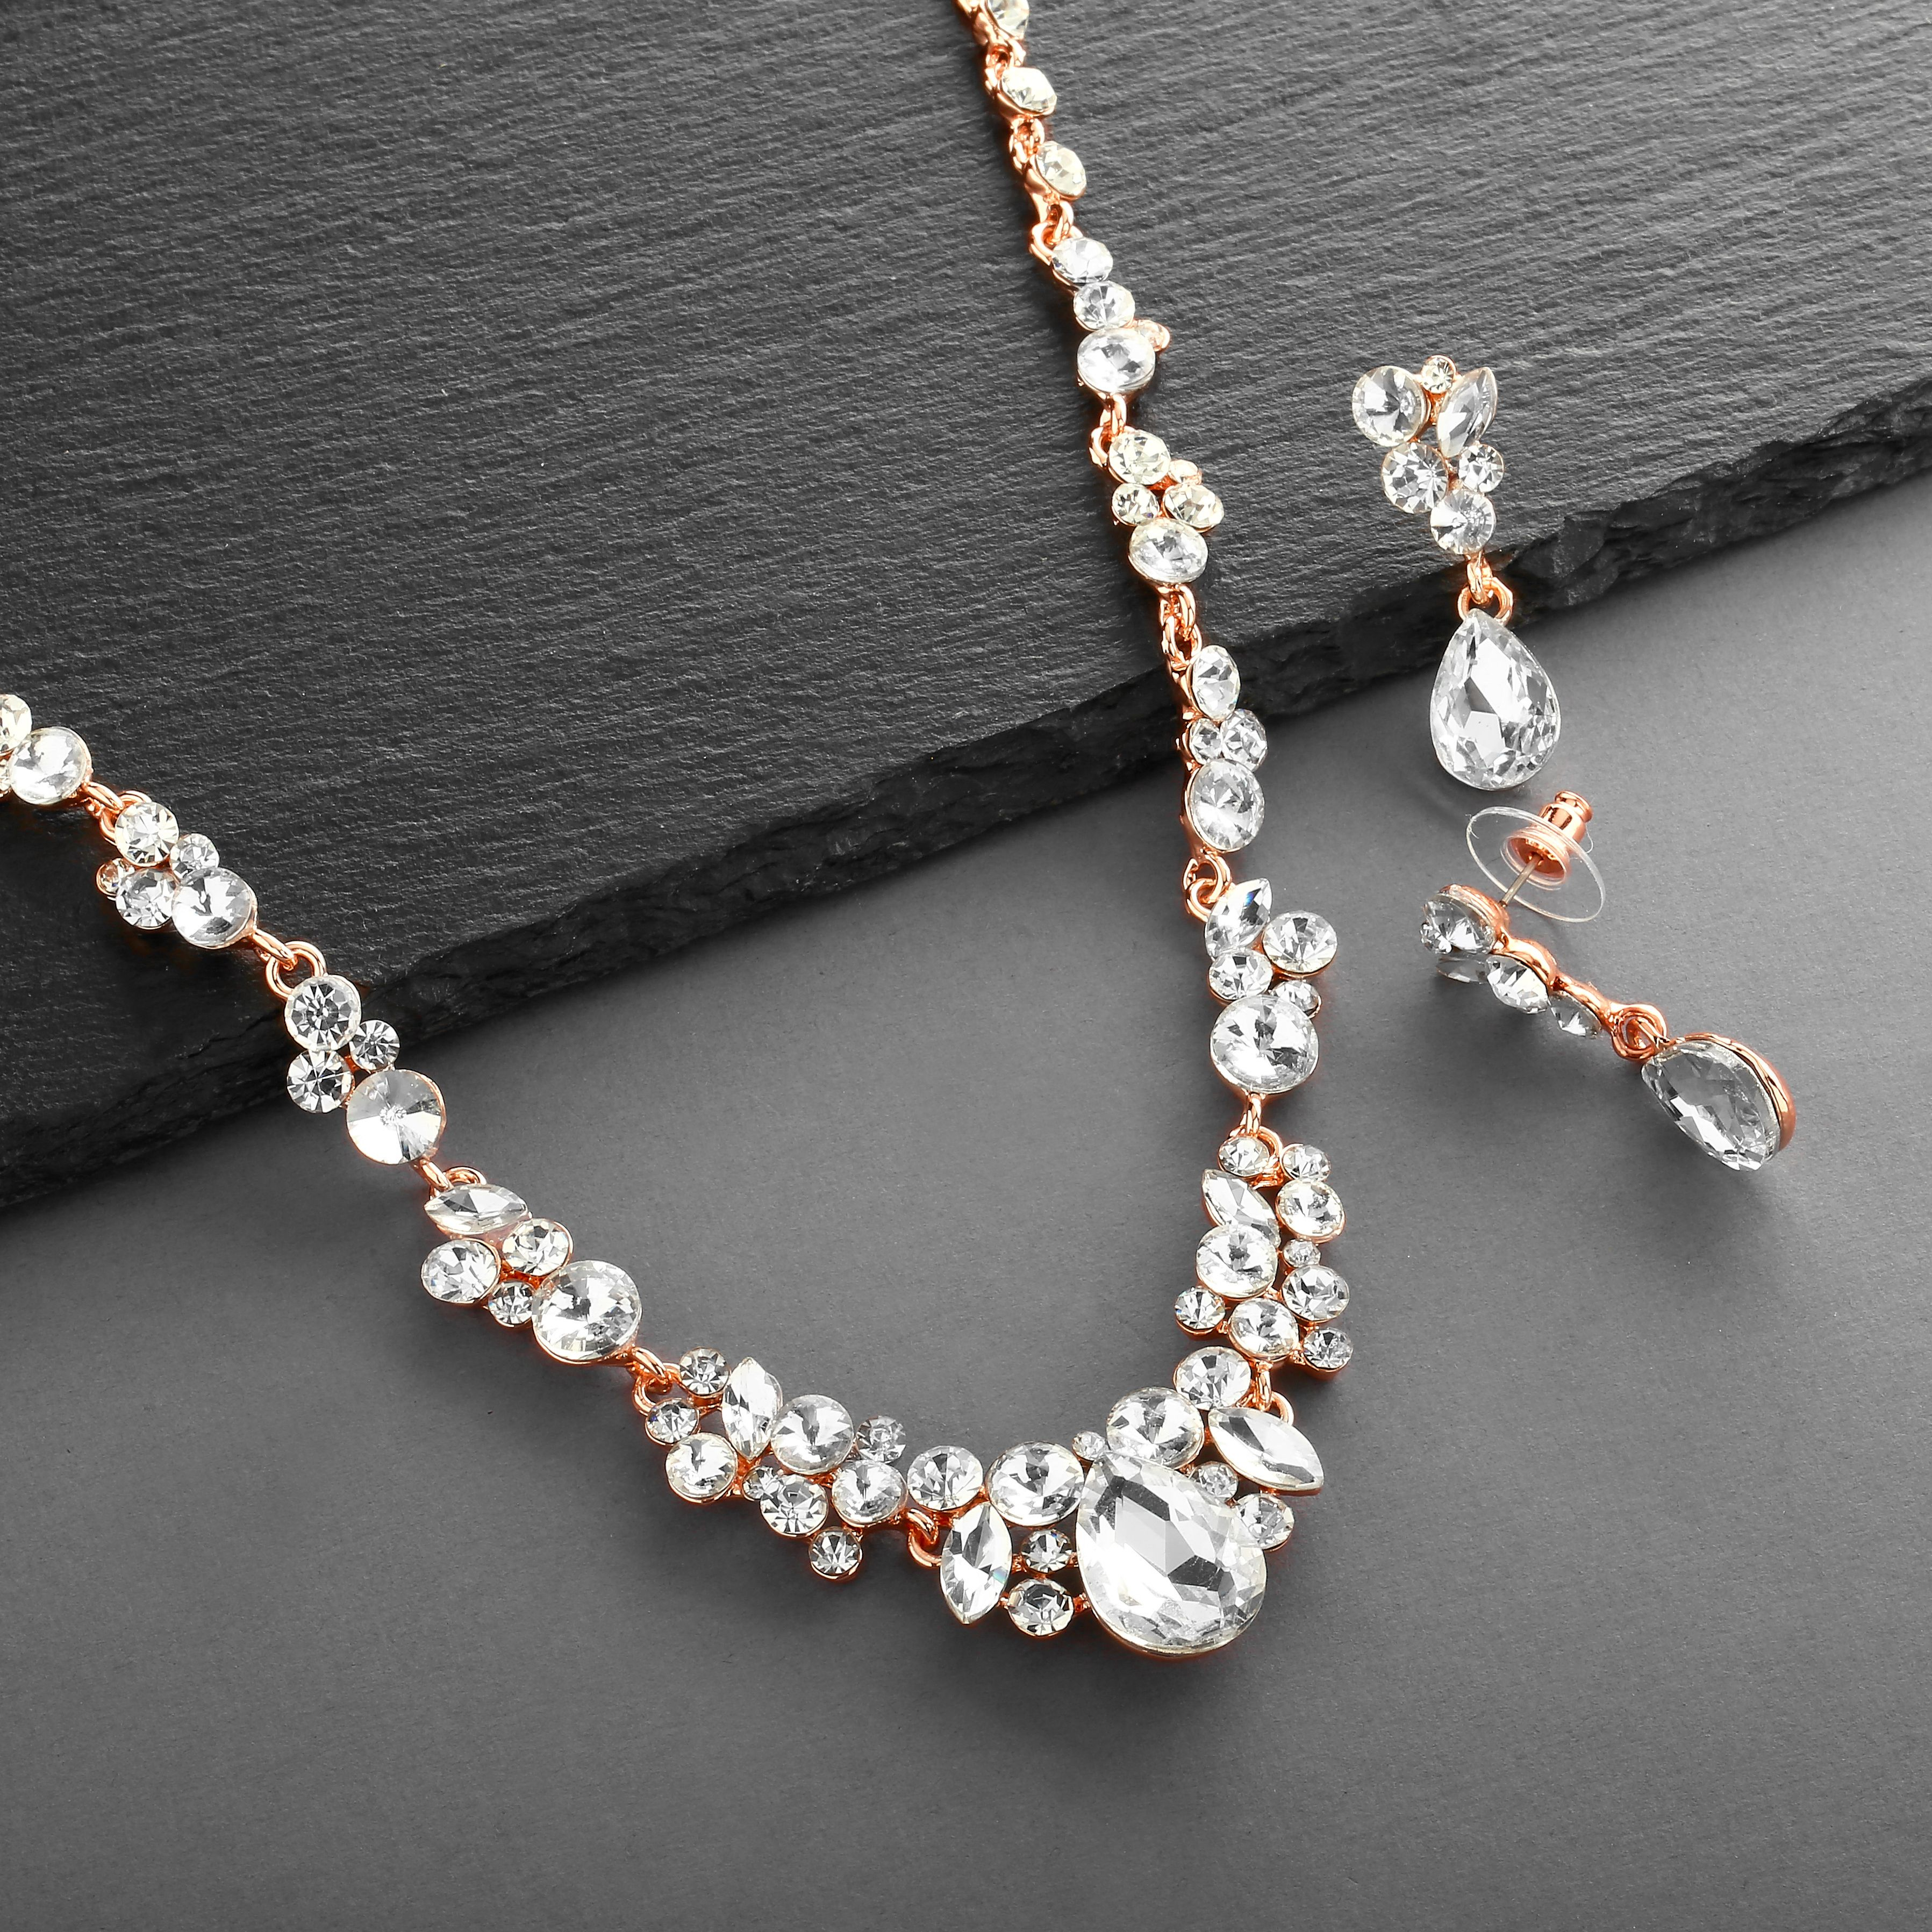 Crystal Bridal Necklace Willow Wedding Earrings Drop Rose Gold Bridal Jewelry Set Earring Necklace Set